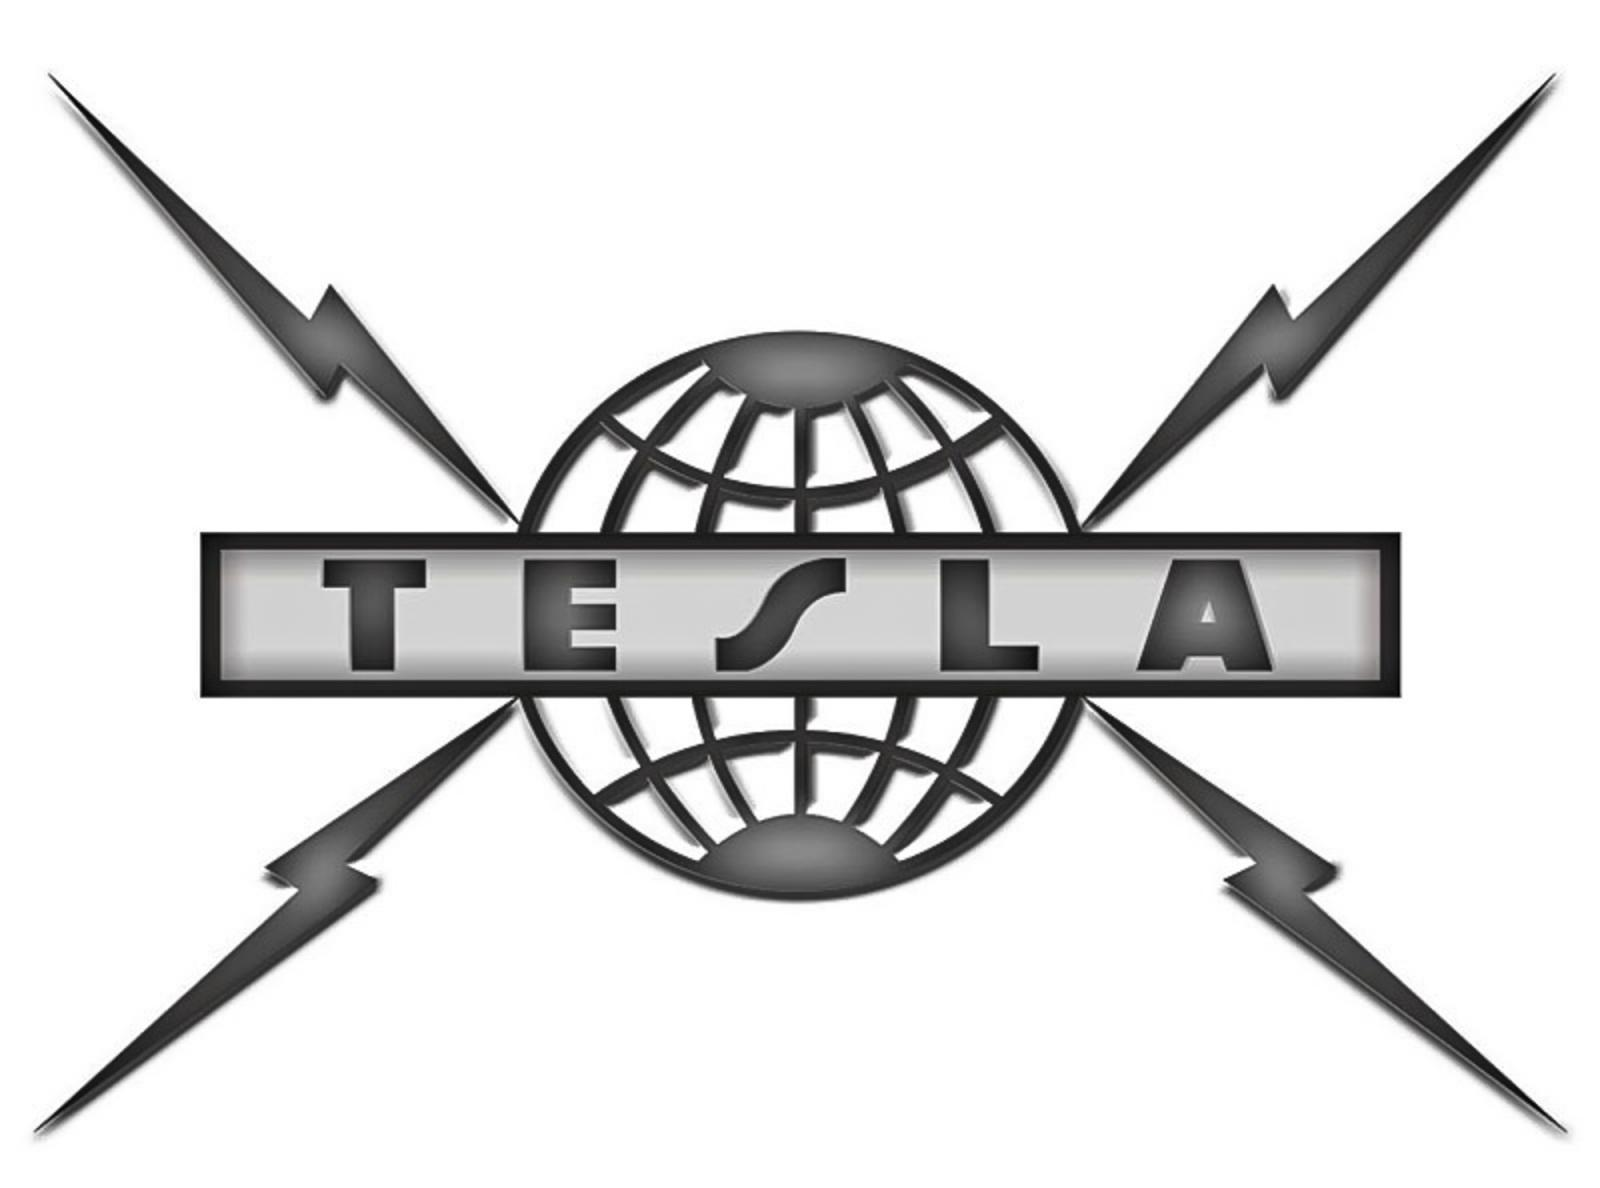 The logo of the American band named after Tesla.